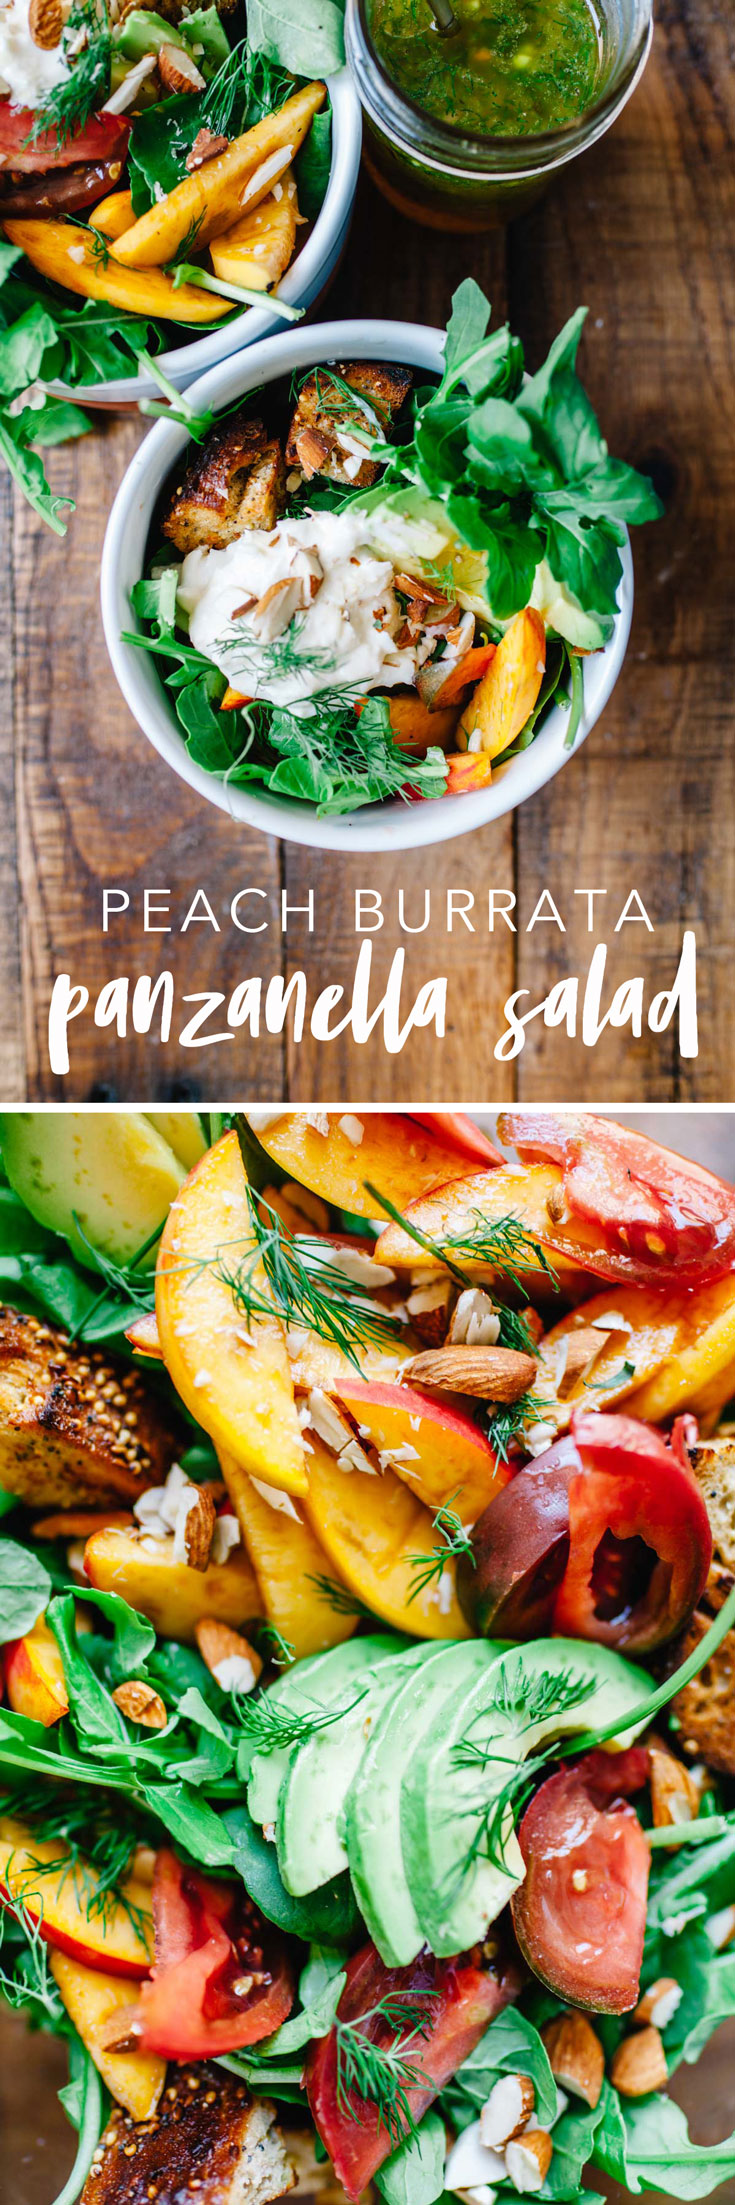 This Peach Burrata Panzanella Salad with Lemon-Dill Dressing is the perfect combination of fresh seasonal produce, cheese and toasted bread. What could be more perfect for summer? #salad #peach #burrata #panzanella #healthy #vegetarian | Brewing Happiness